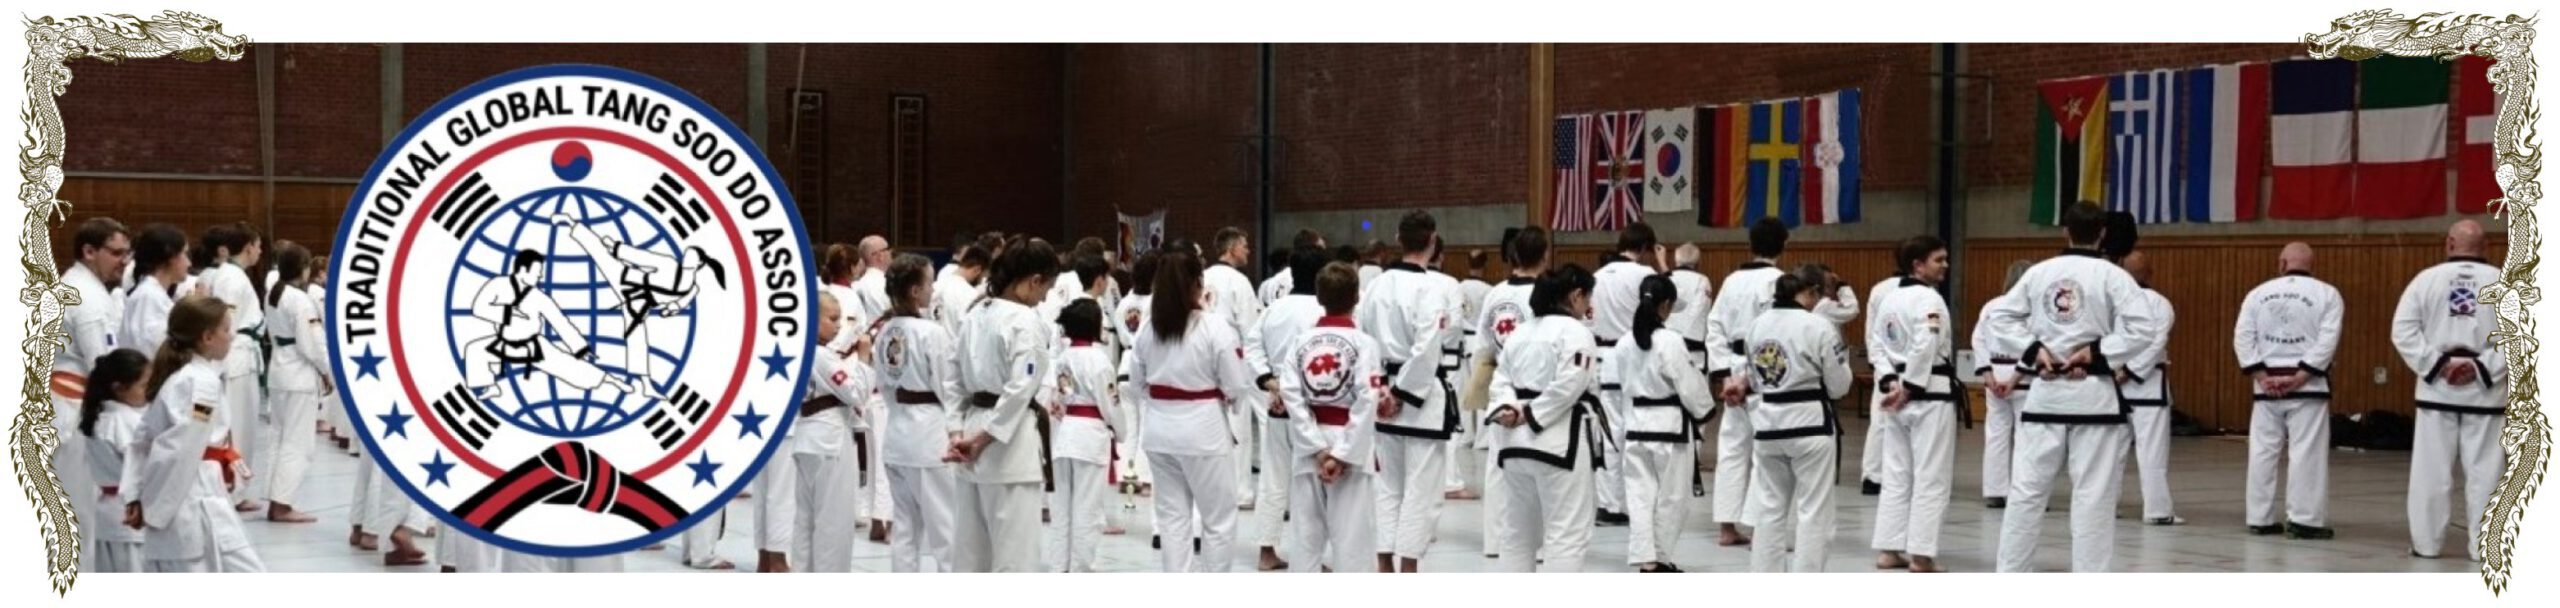 Traditional Global Tang Soo Do Association